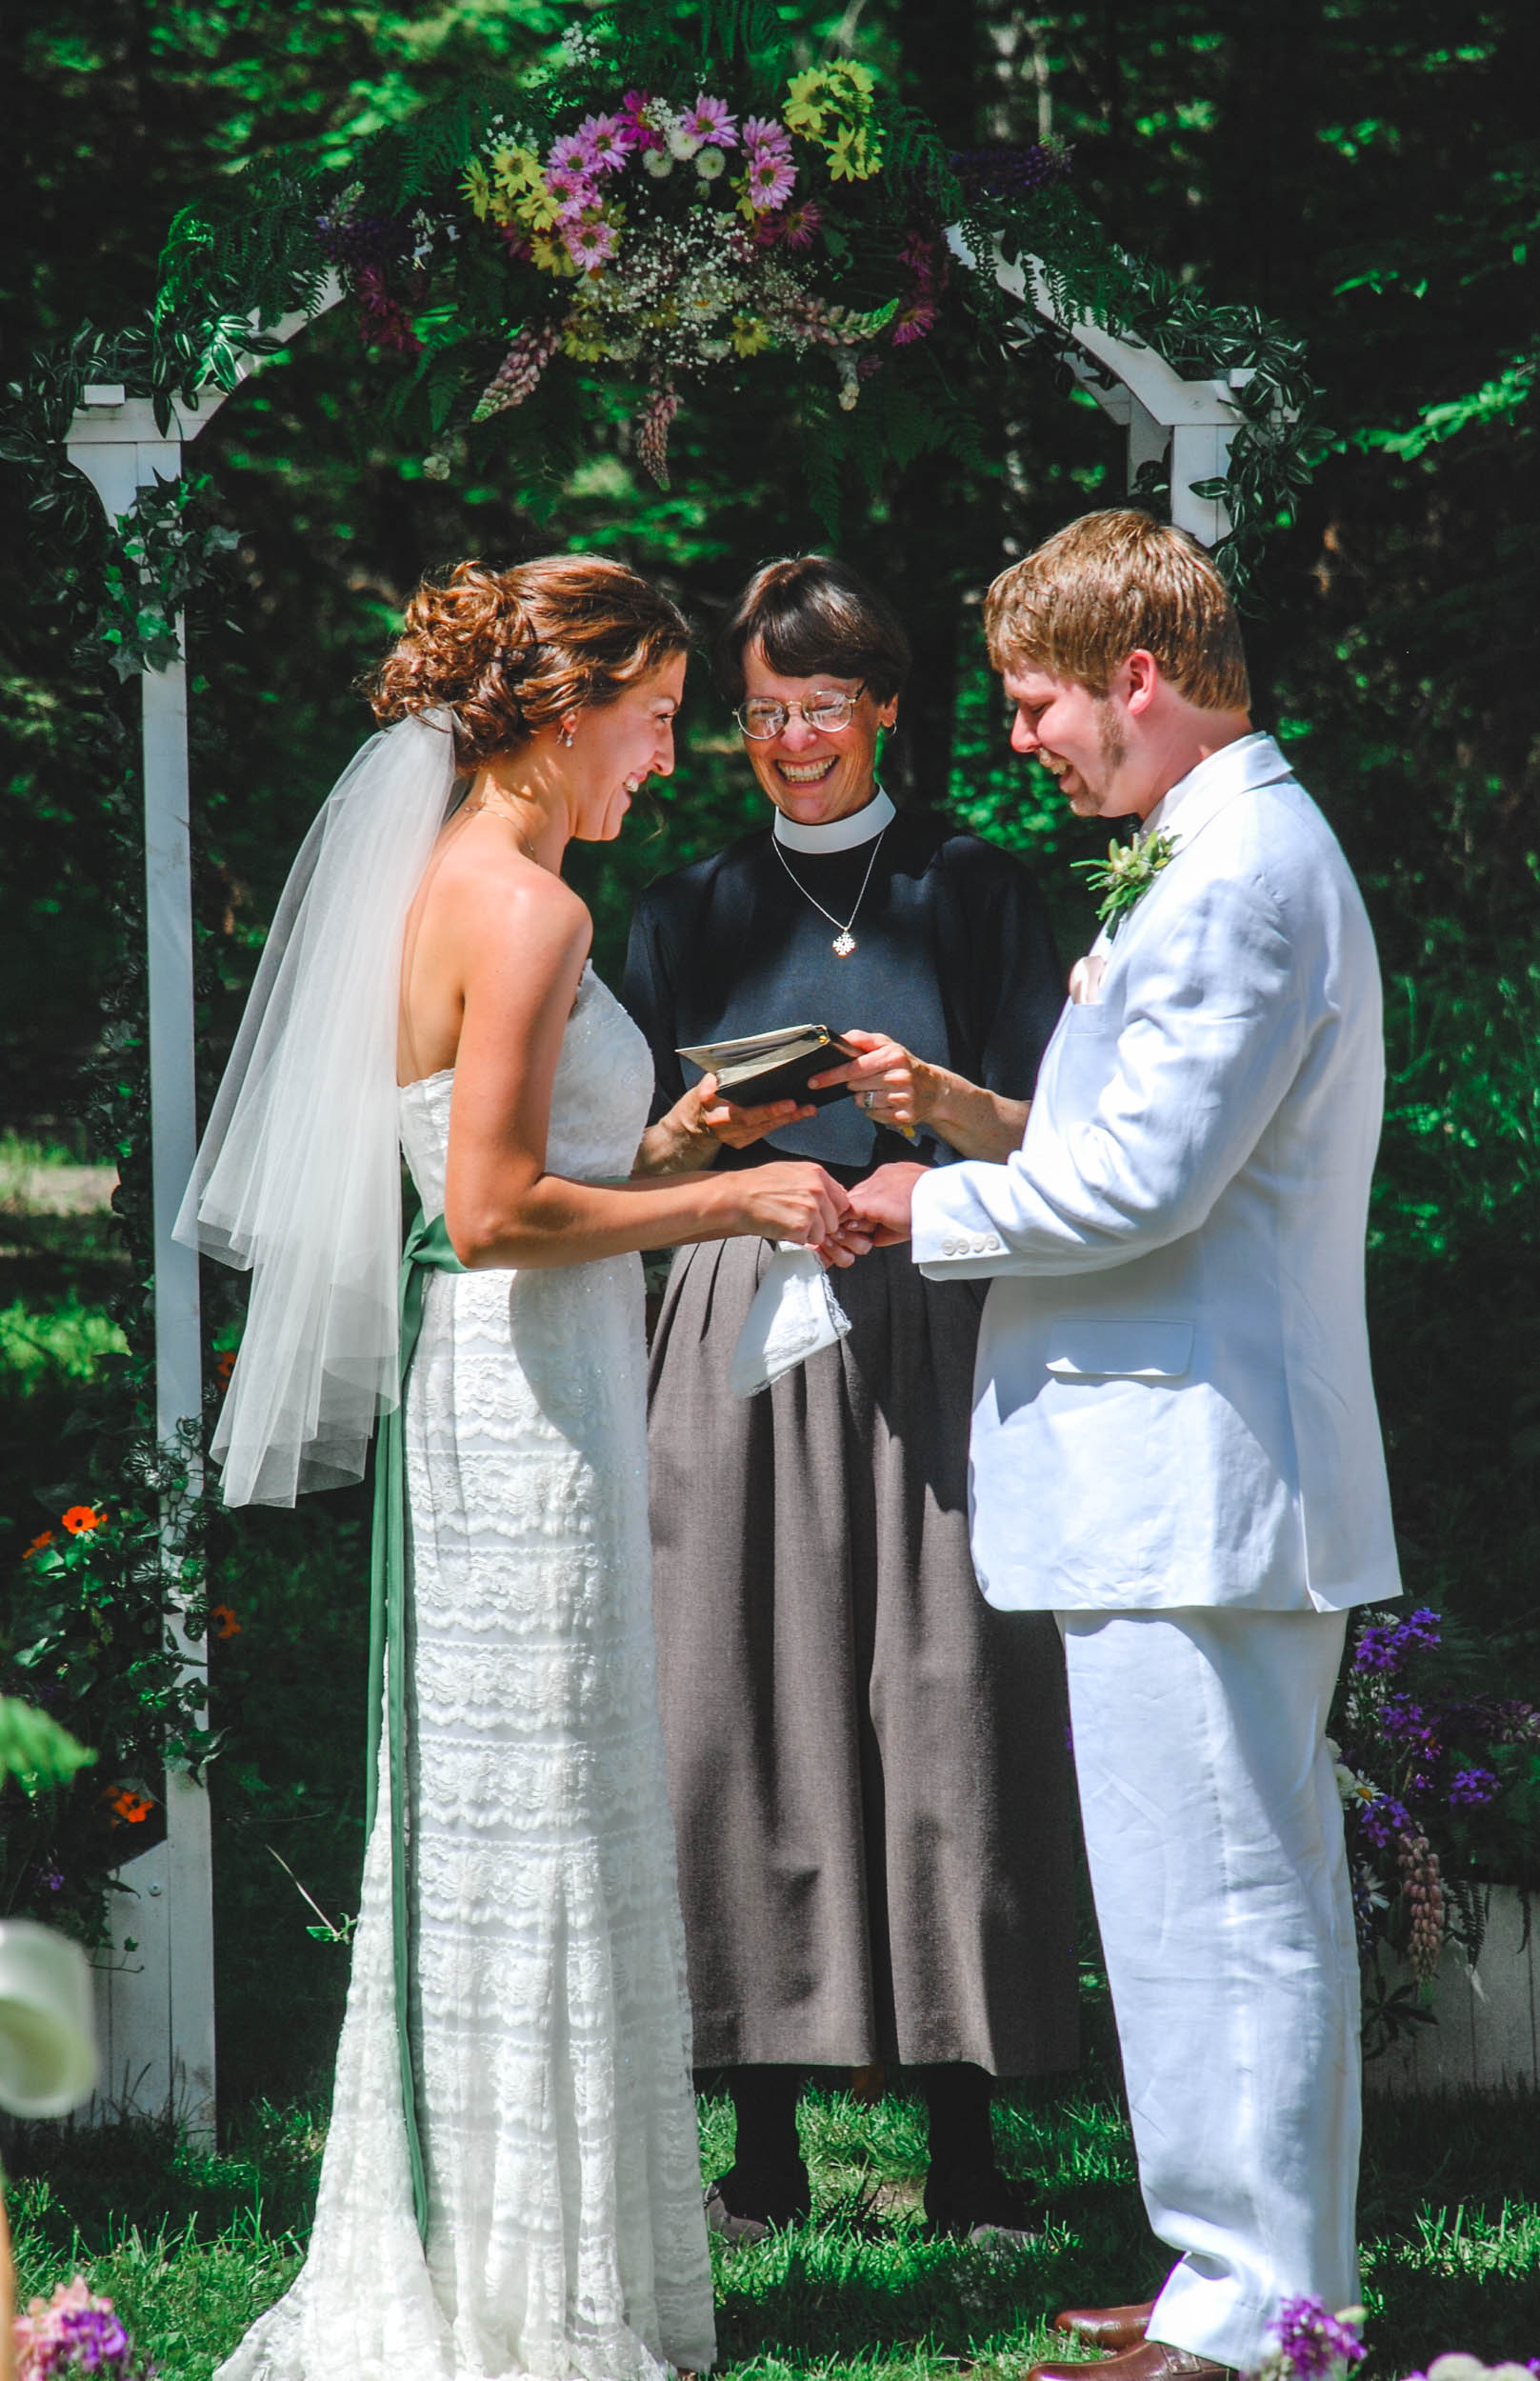 Exchanging the rings in an outdoor summer backyard Wisconsin wedding